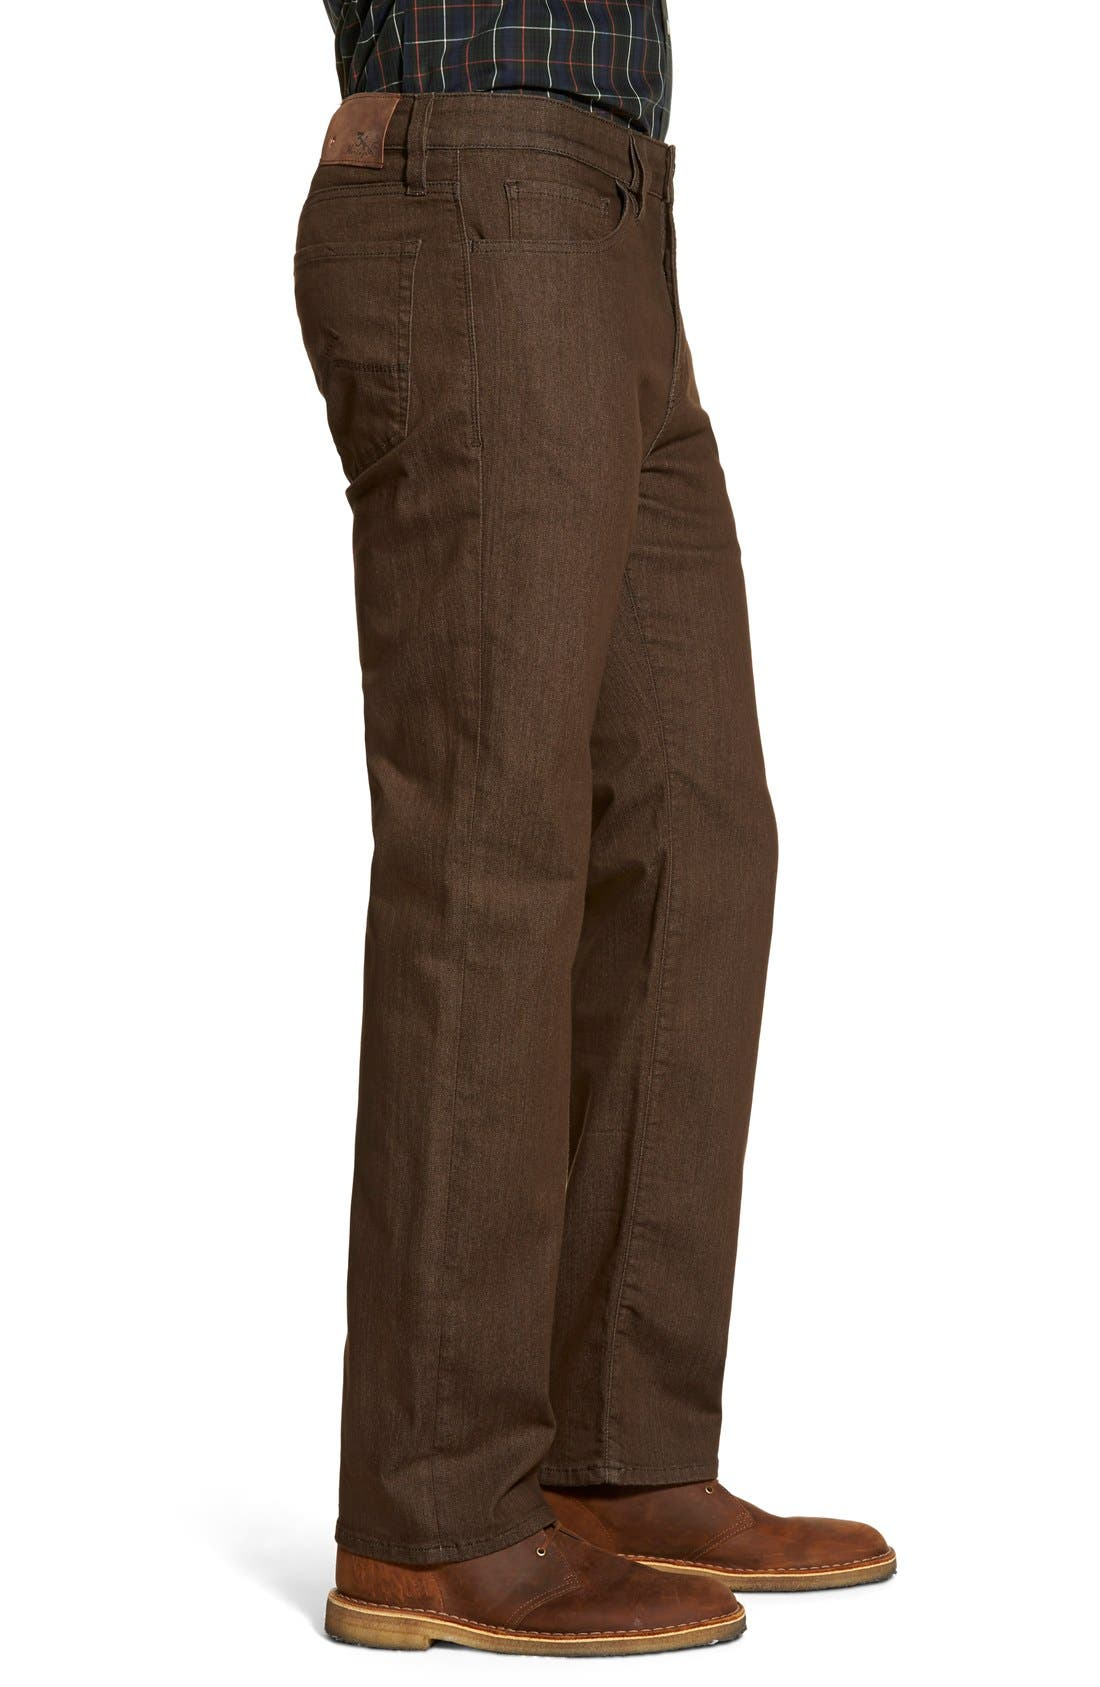 'Charisma' Relaxed Fit Jeans,                             Alternate thumbnail 7, color,                             Brown Comfort